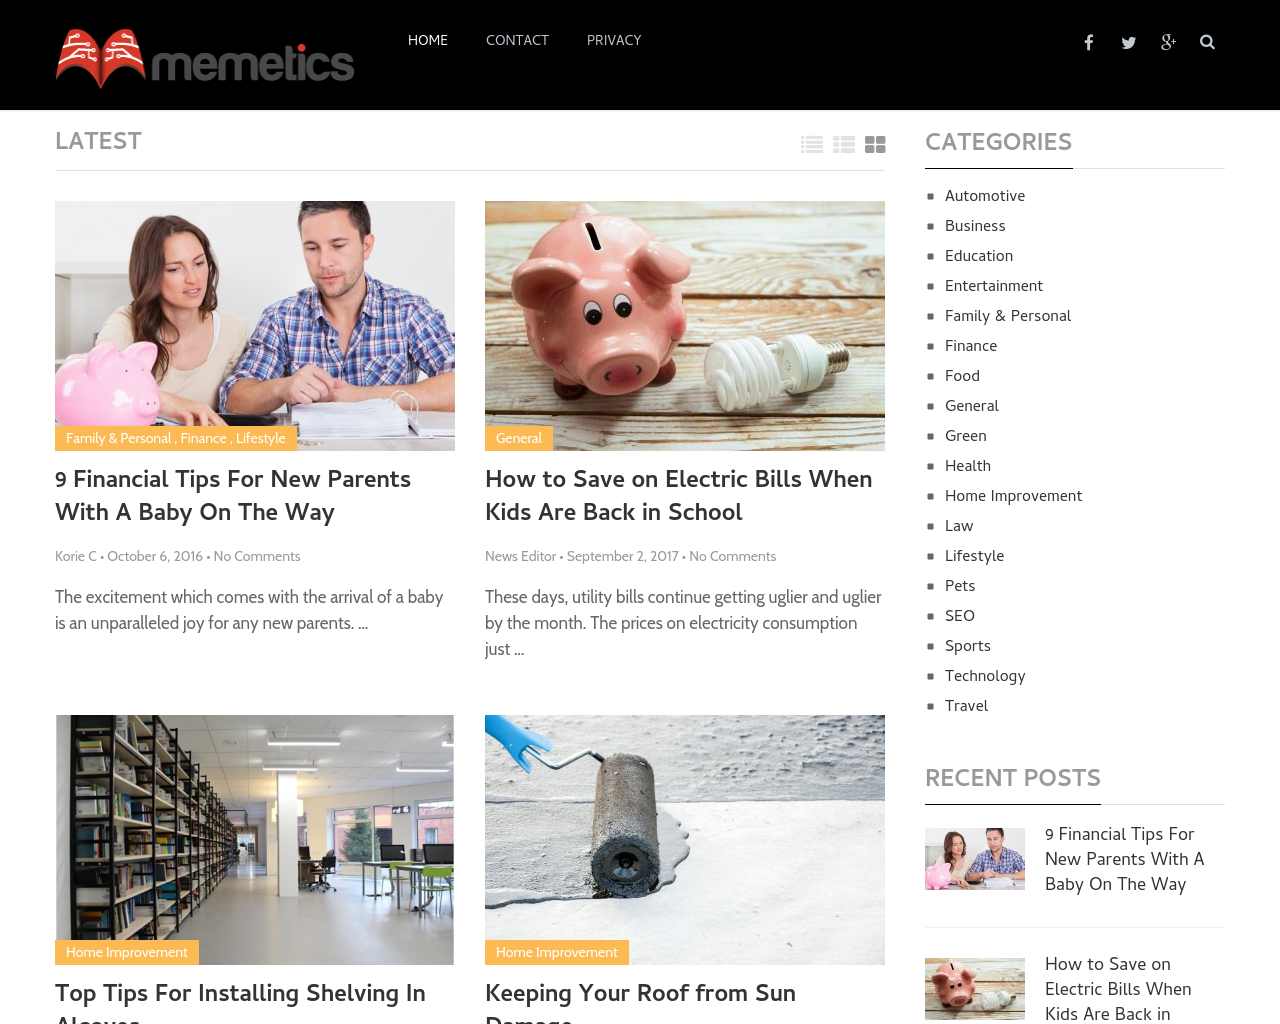 Memetics-Advertising-Reviews-Pricing